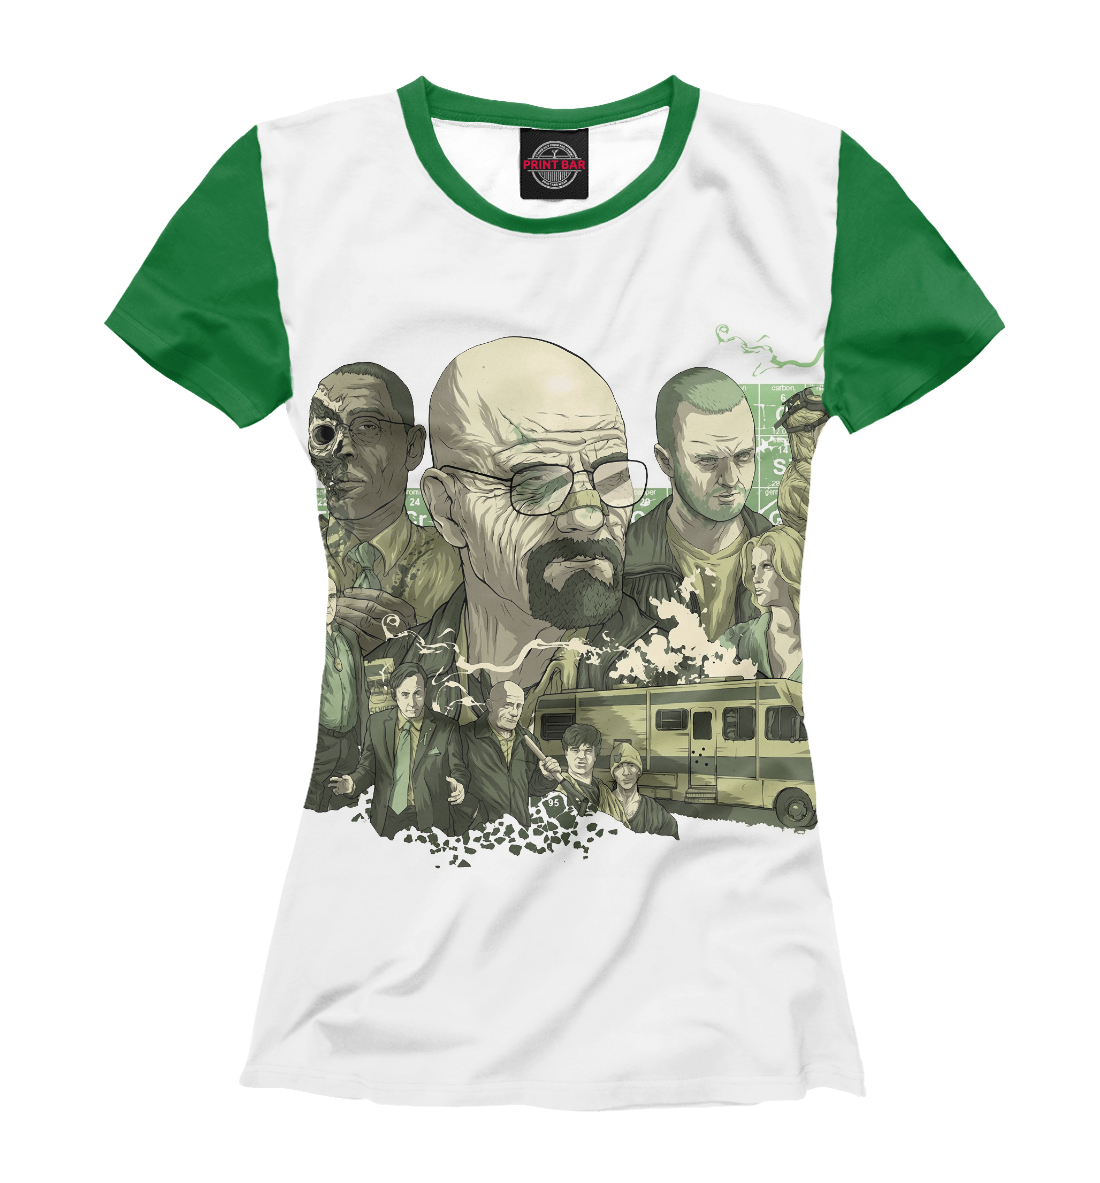 Купить Breaking bad, Printbar, Футболки, VVT-413733-fut-1